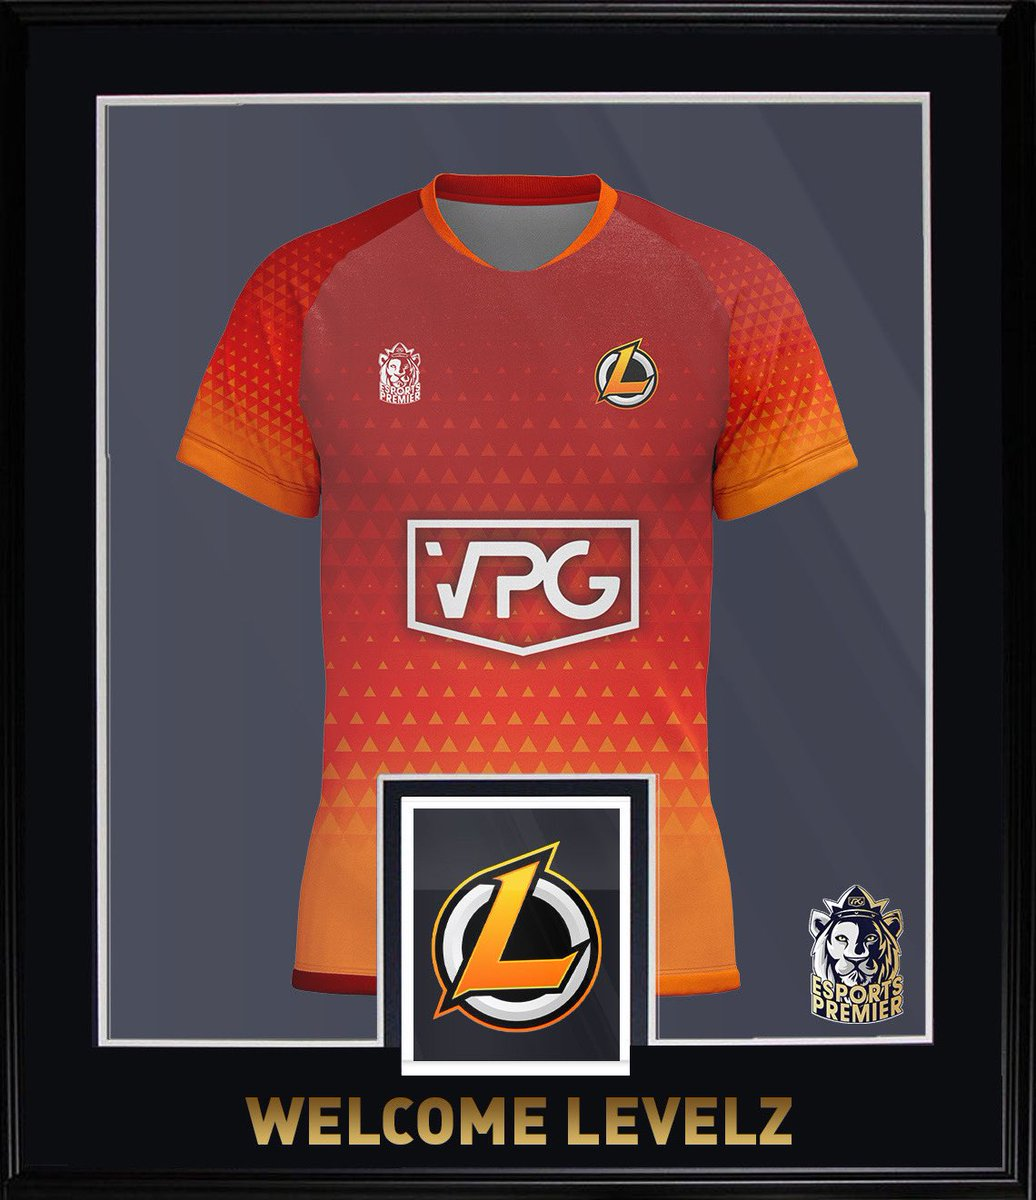 🤩 Welcome @LevelzProClubs into the @VPGPremier !   🌍 Nationality: 🇮🇪   🏆 @Seanoneill25_ is taking Levelz to another level this season. Previously Limit, now ready to challenge for the Premier Title!   #Levelz #FIFA21 #ProClubs #VPG https://t.co/g52dWVmpAk